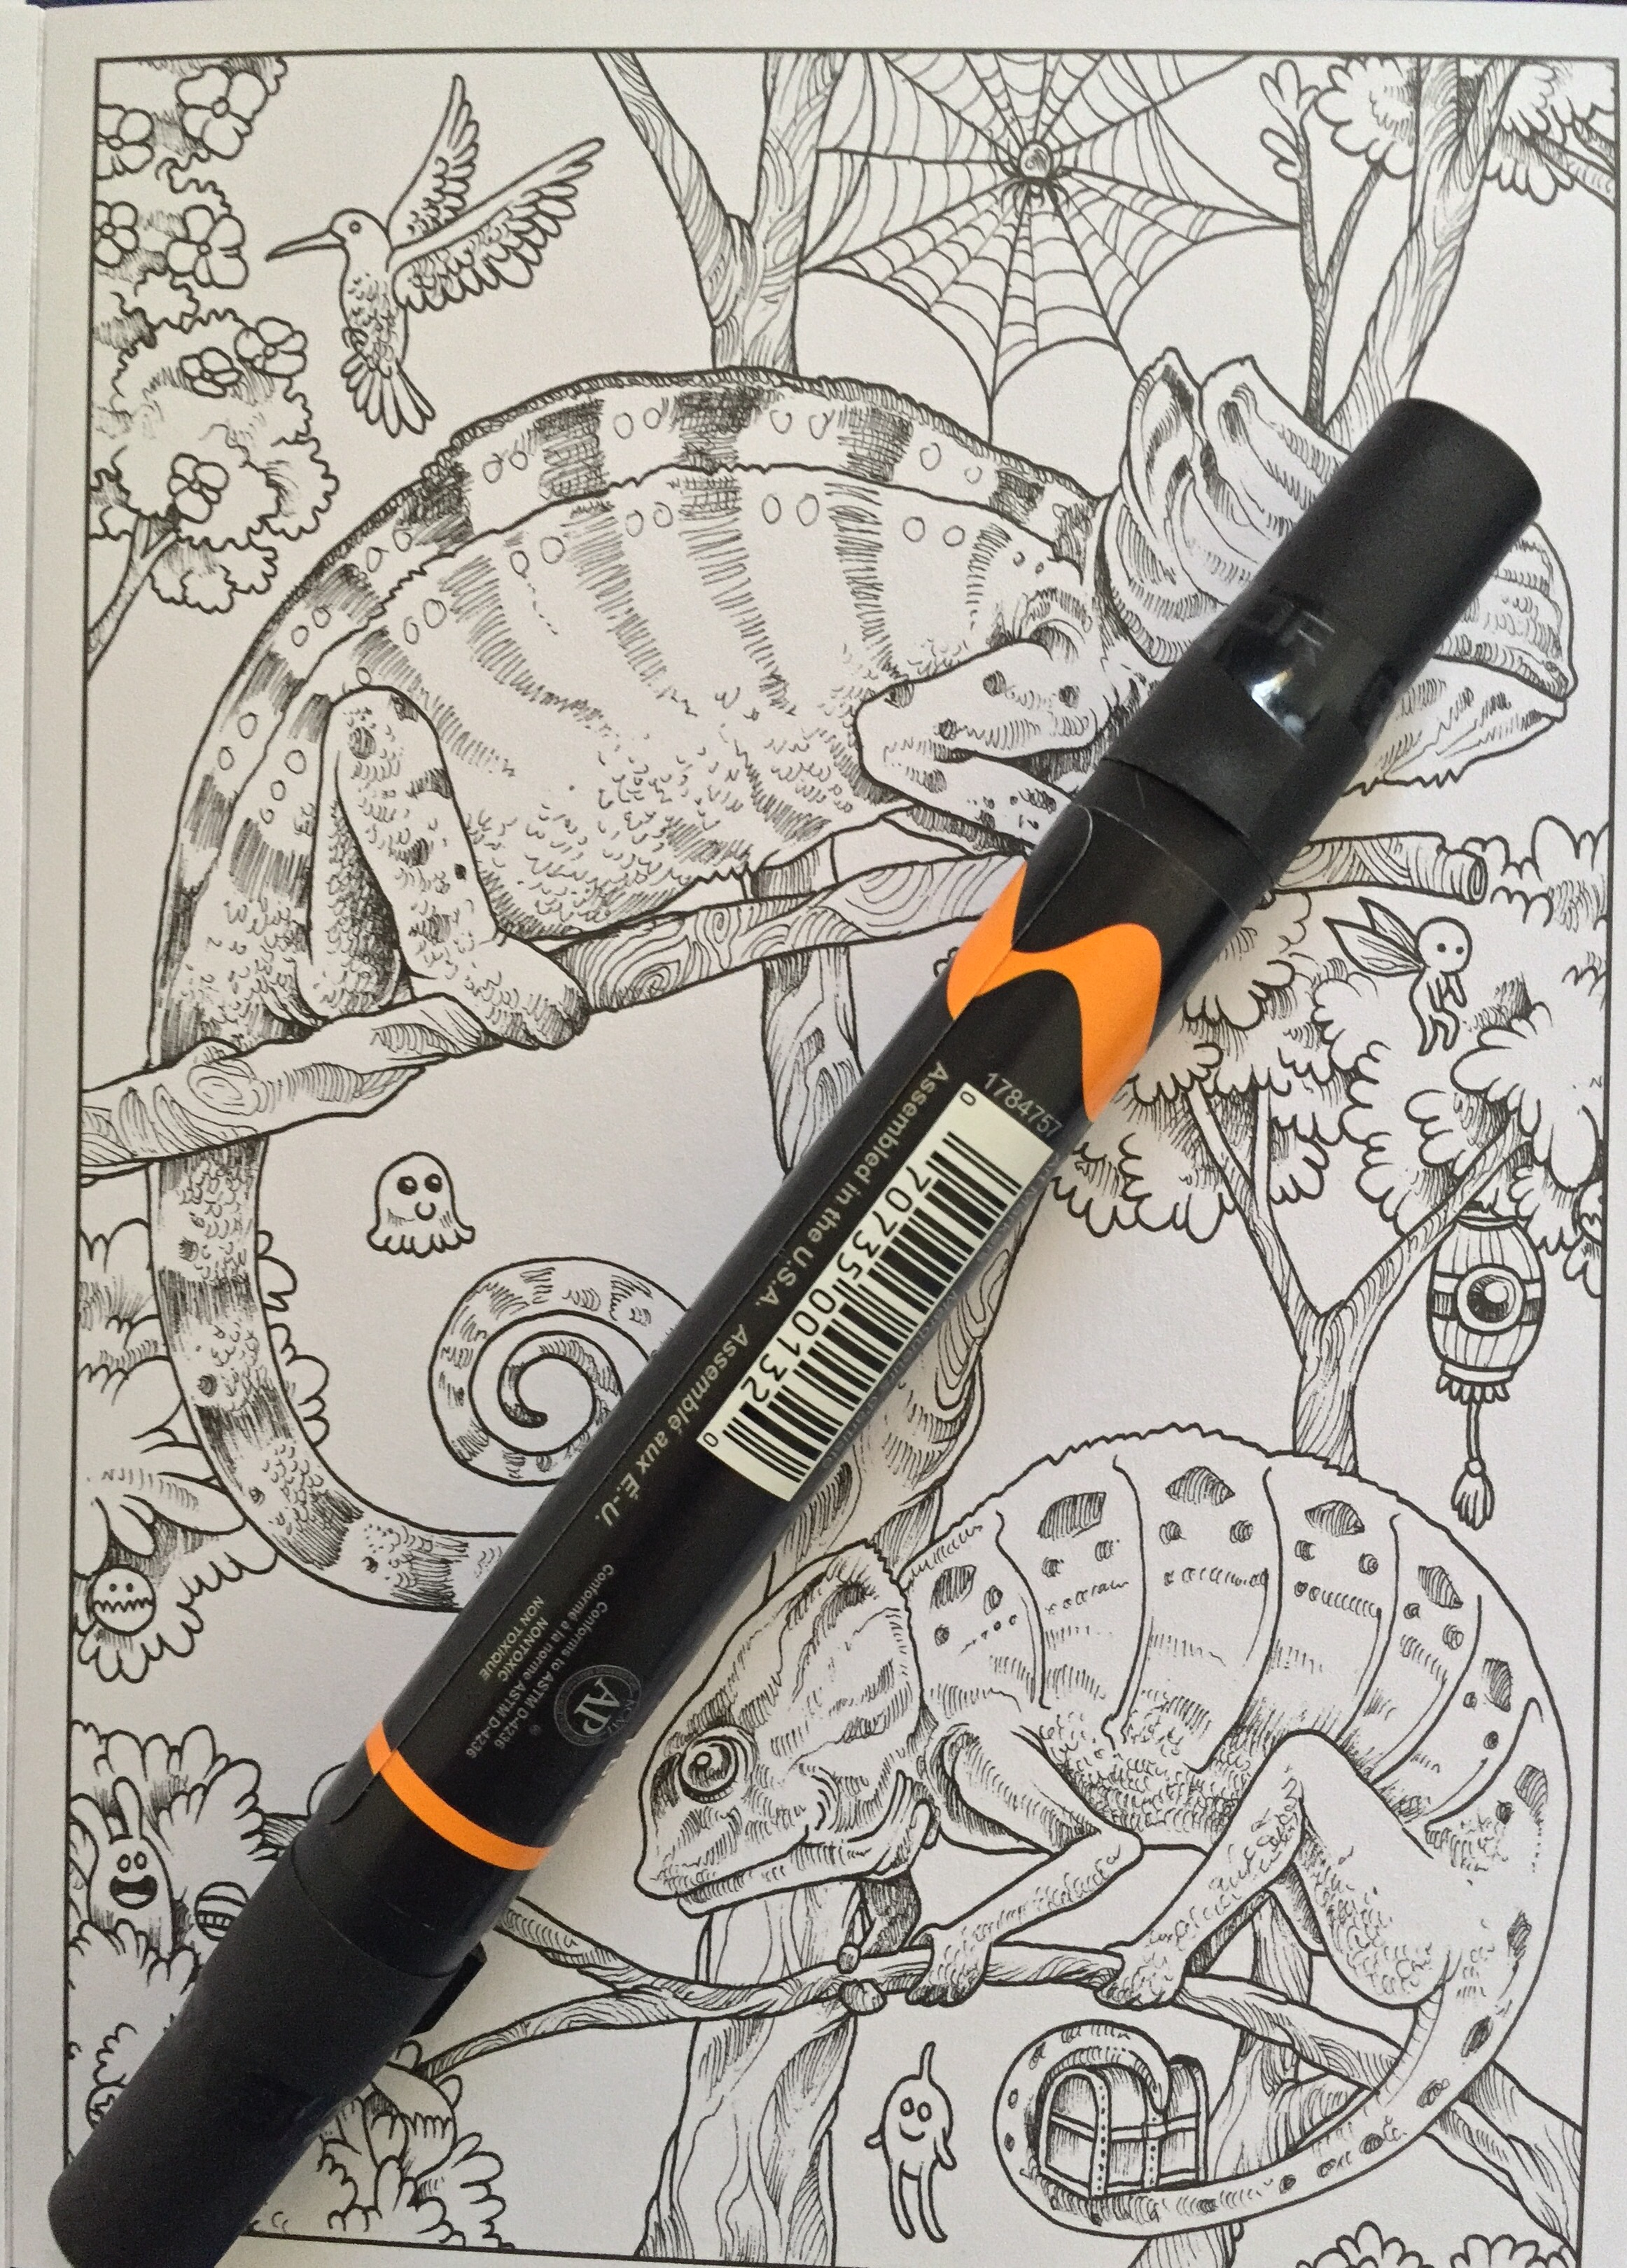 Colouring pencils for adults reviews - Adult Color Fantasy Chalks Mandalas Pencils Finished Quotes Coloring Pastels Nature Water Based Markers Magic Reviews